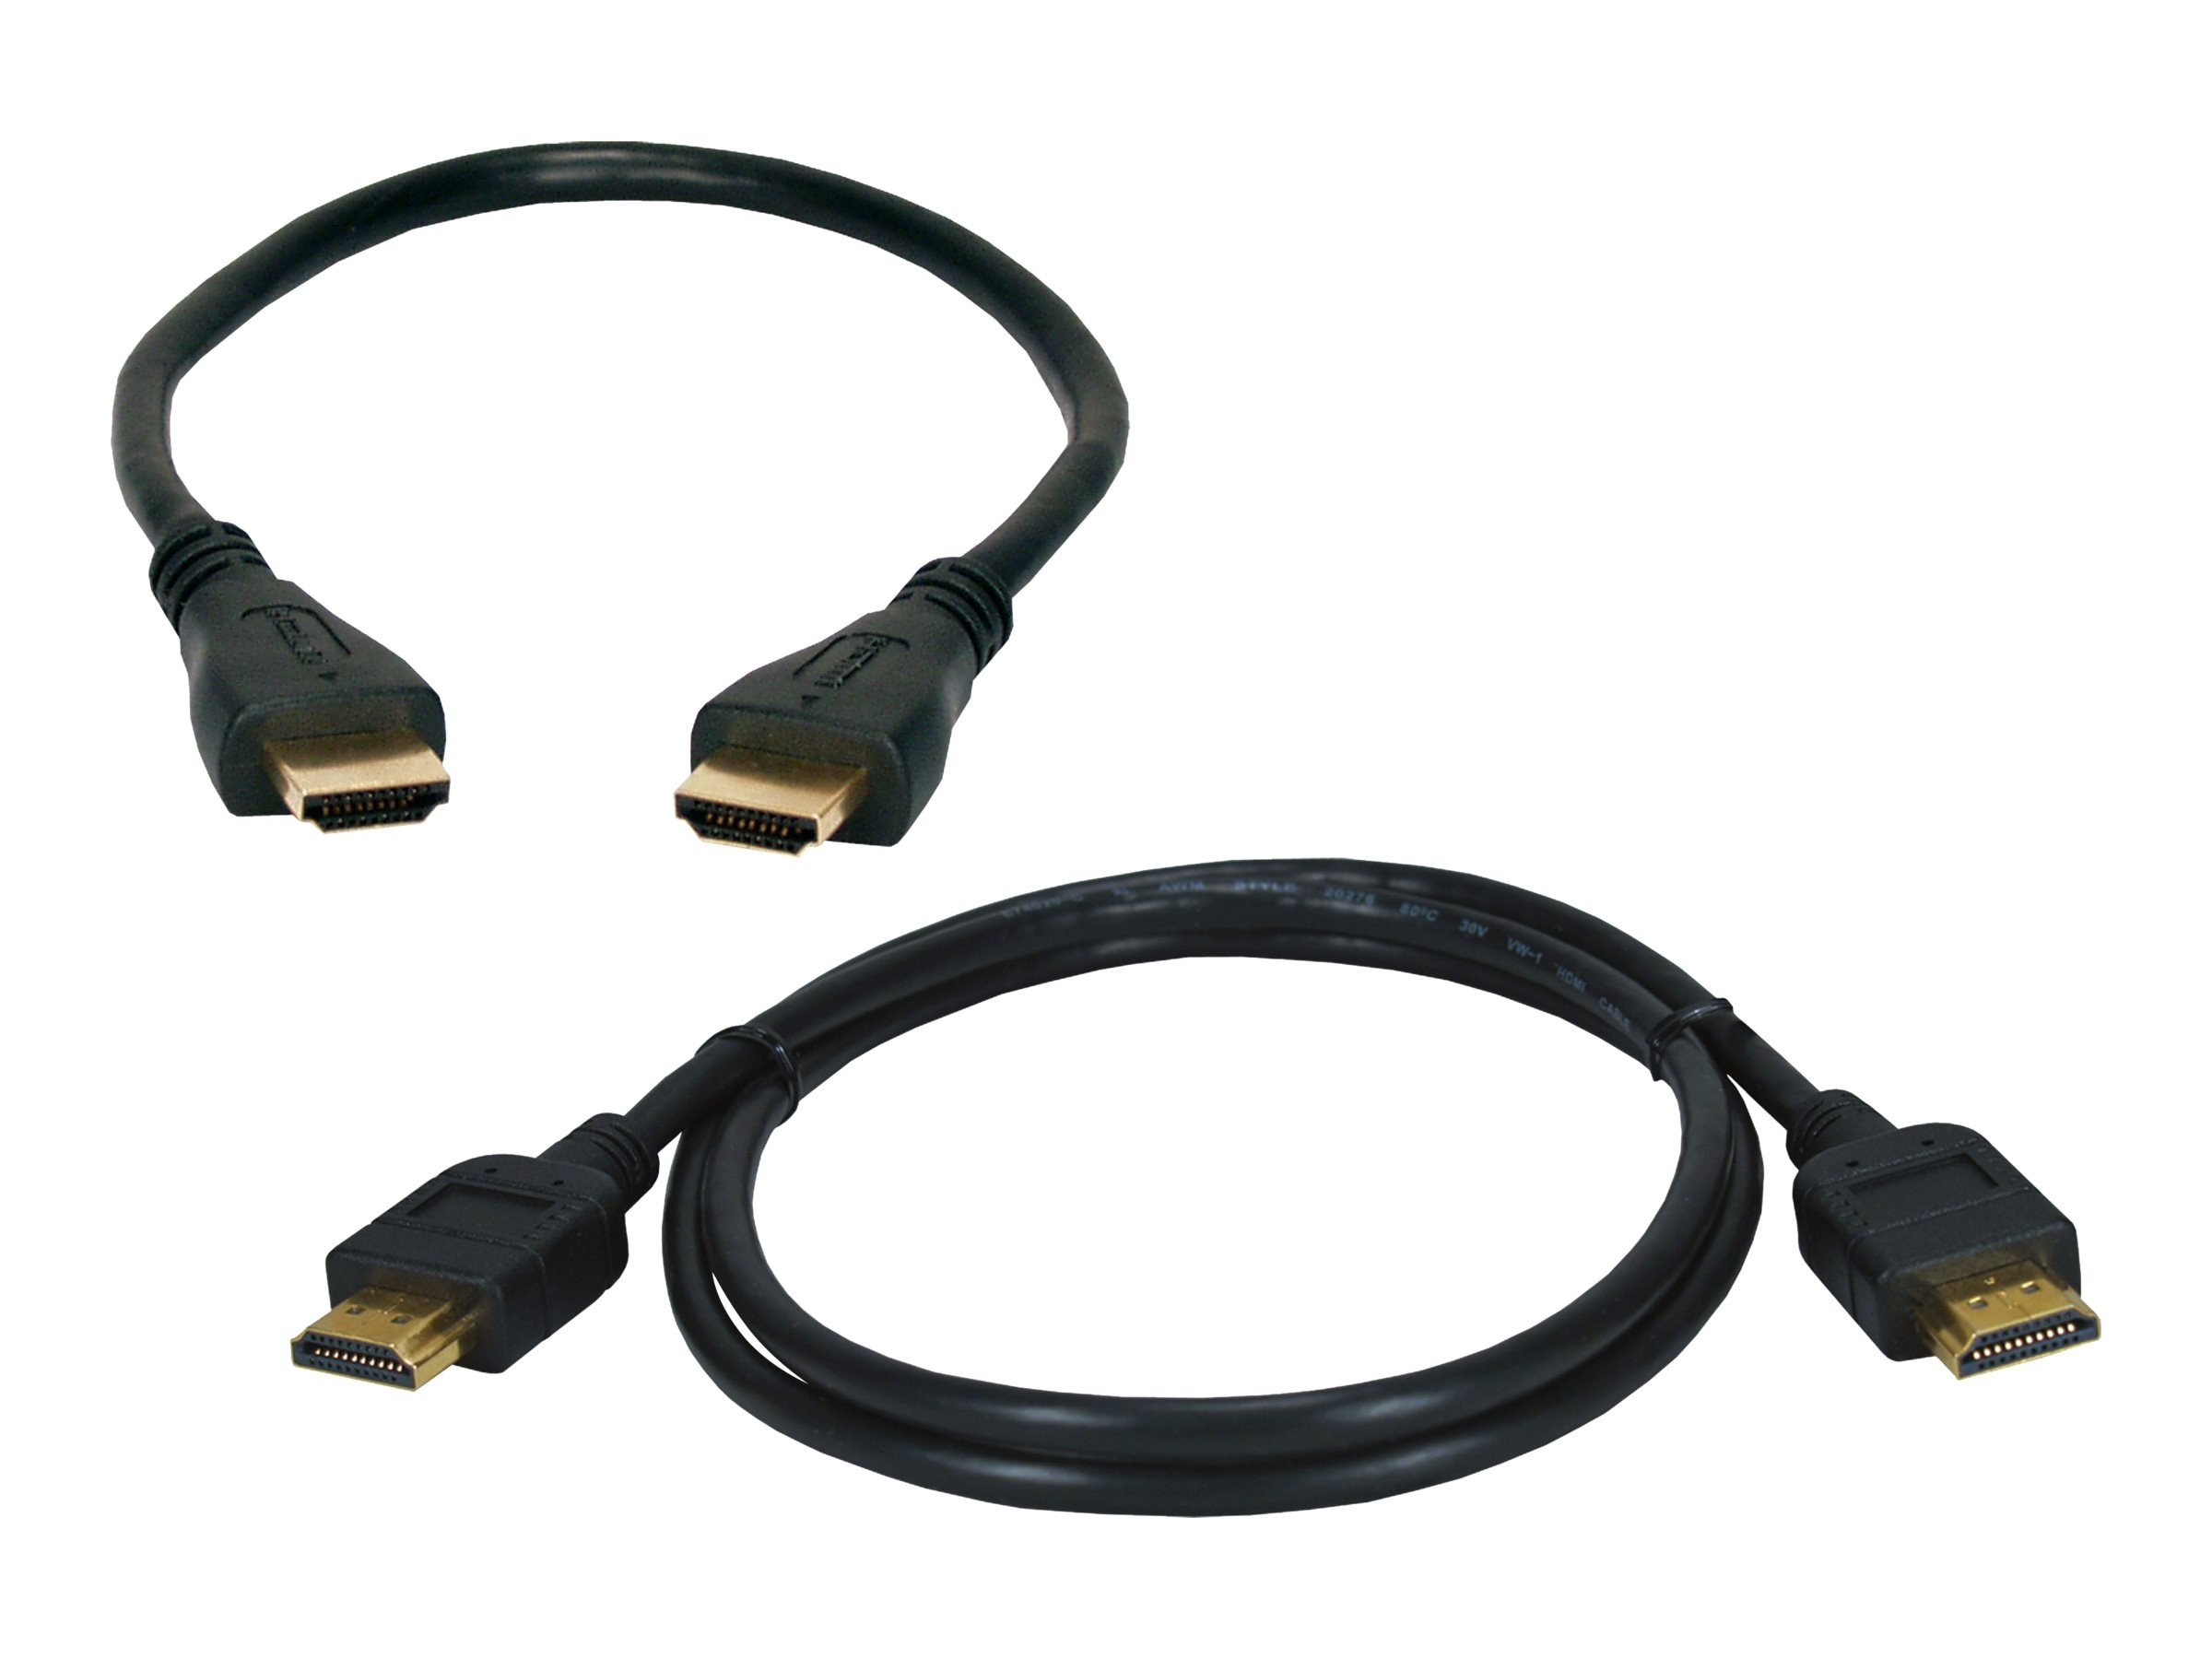 QVS High-Speed HDMI M M with Ethernet 4K Ultra HD Cable, Black, 1.5m and 3m, 2-Pack